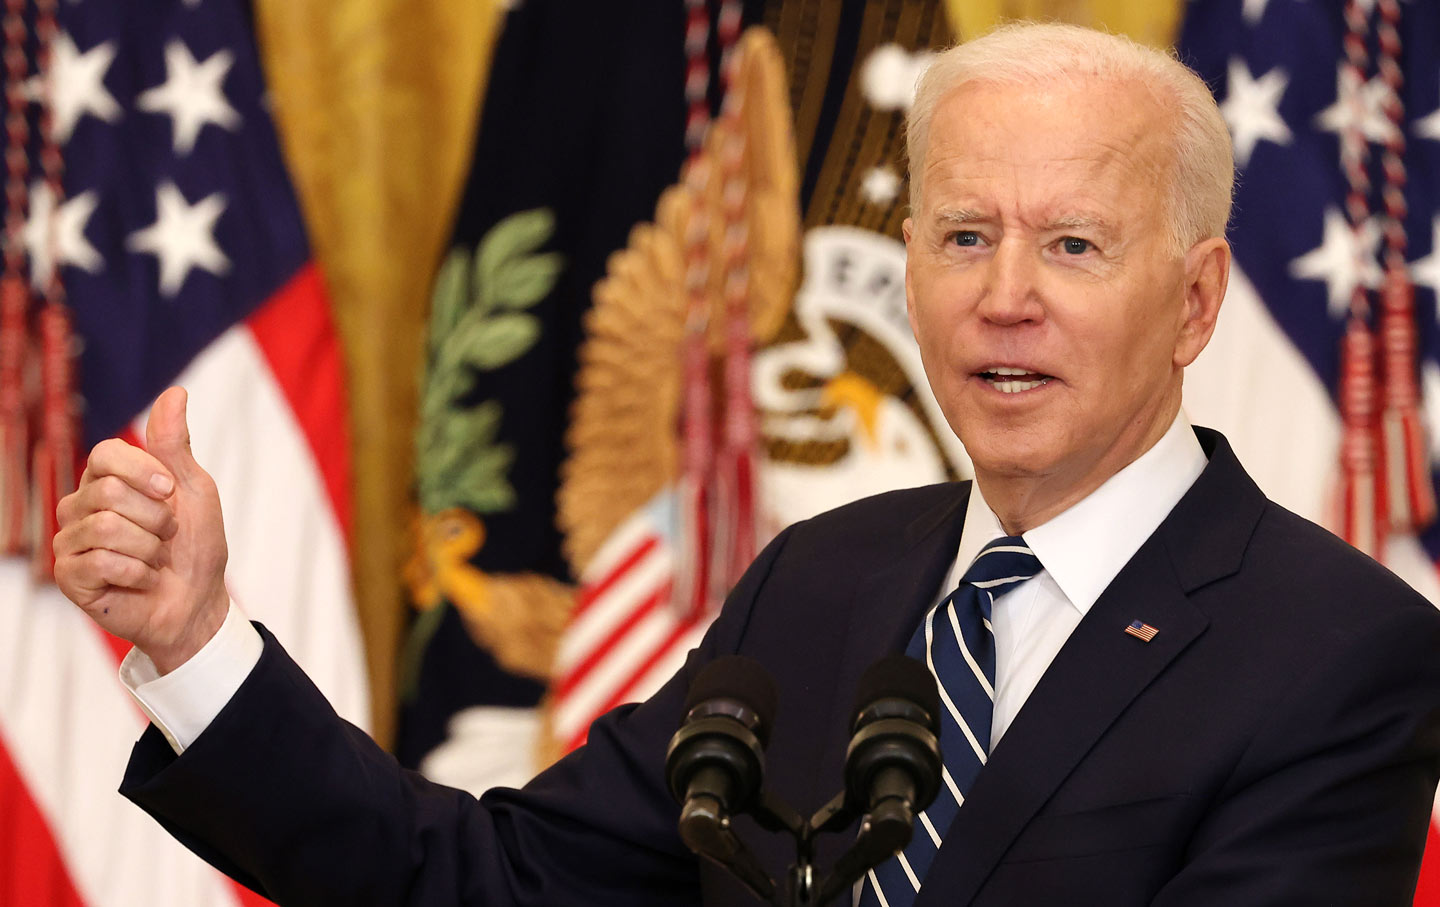 biden-first-press-conference-gty